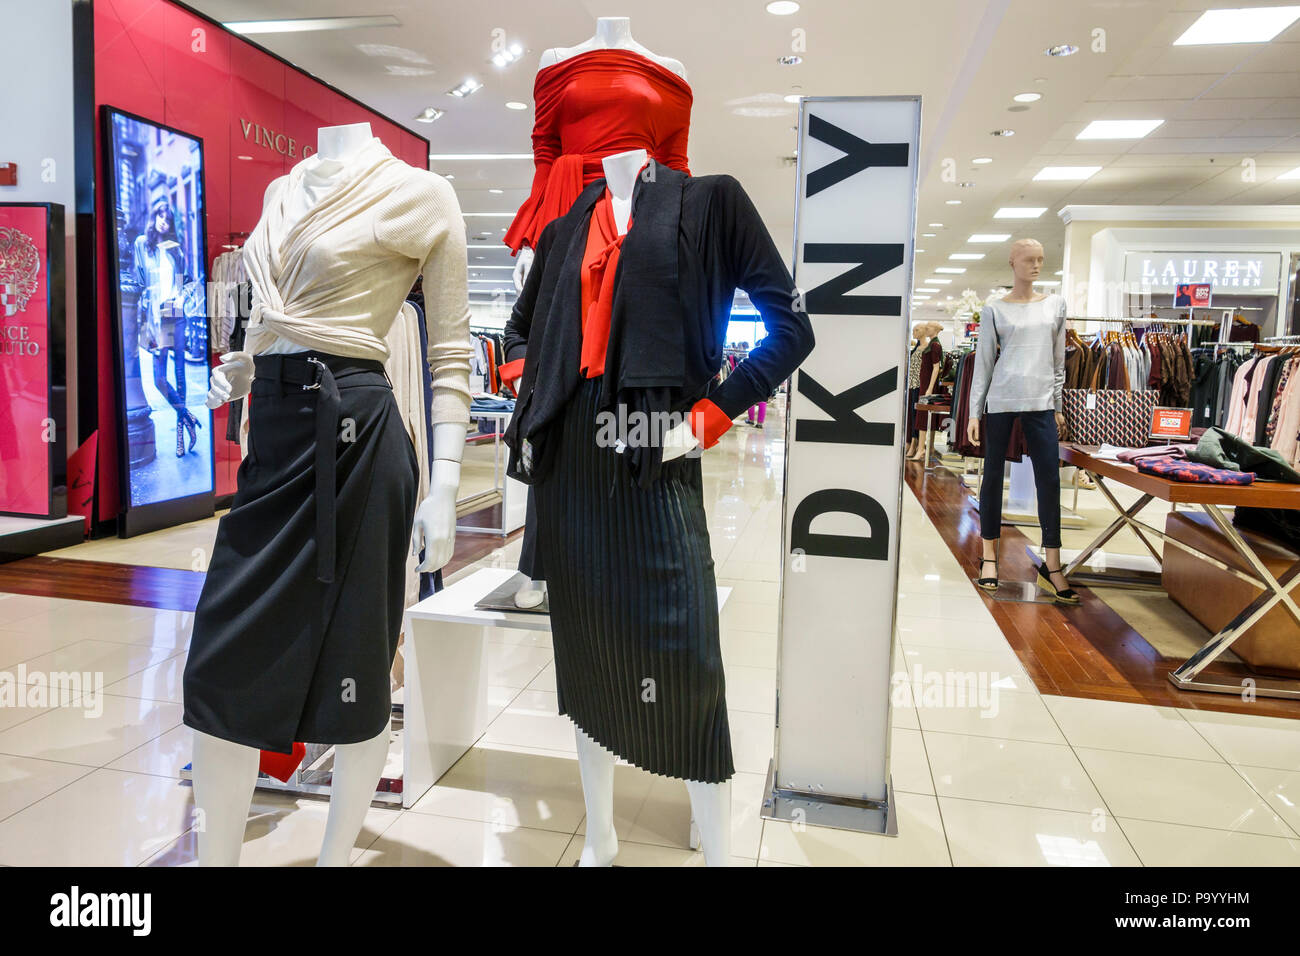 d1a3f7bb8514d Orlando Florida The Mall at Millenia shopping Macy's department store  women's clothing designer DKNY mannequin display interior